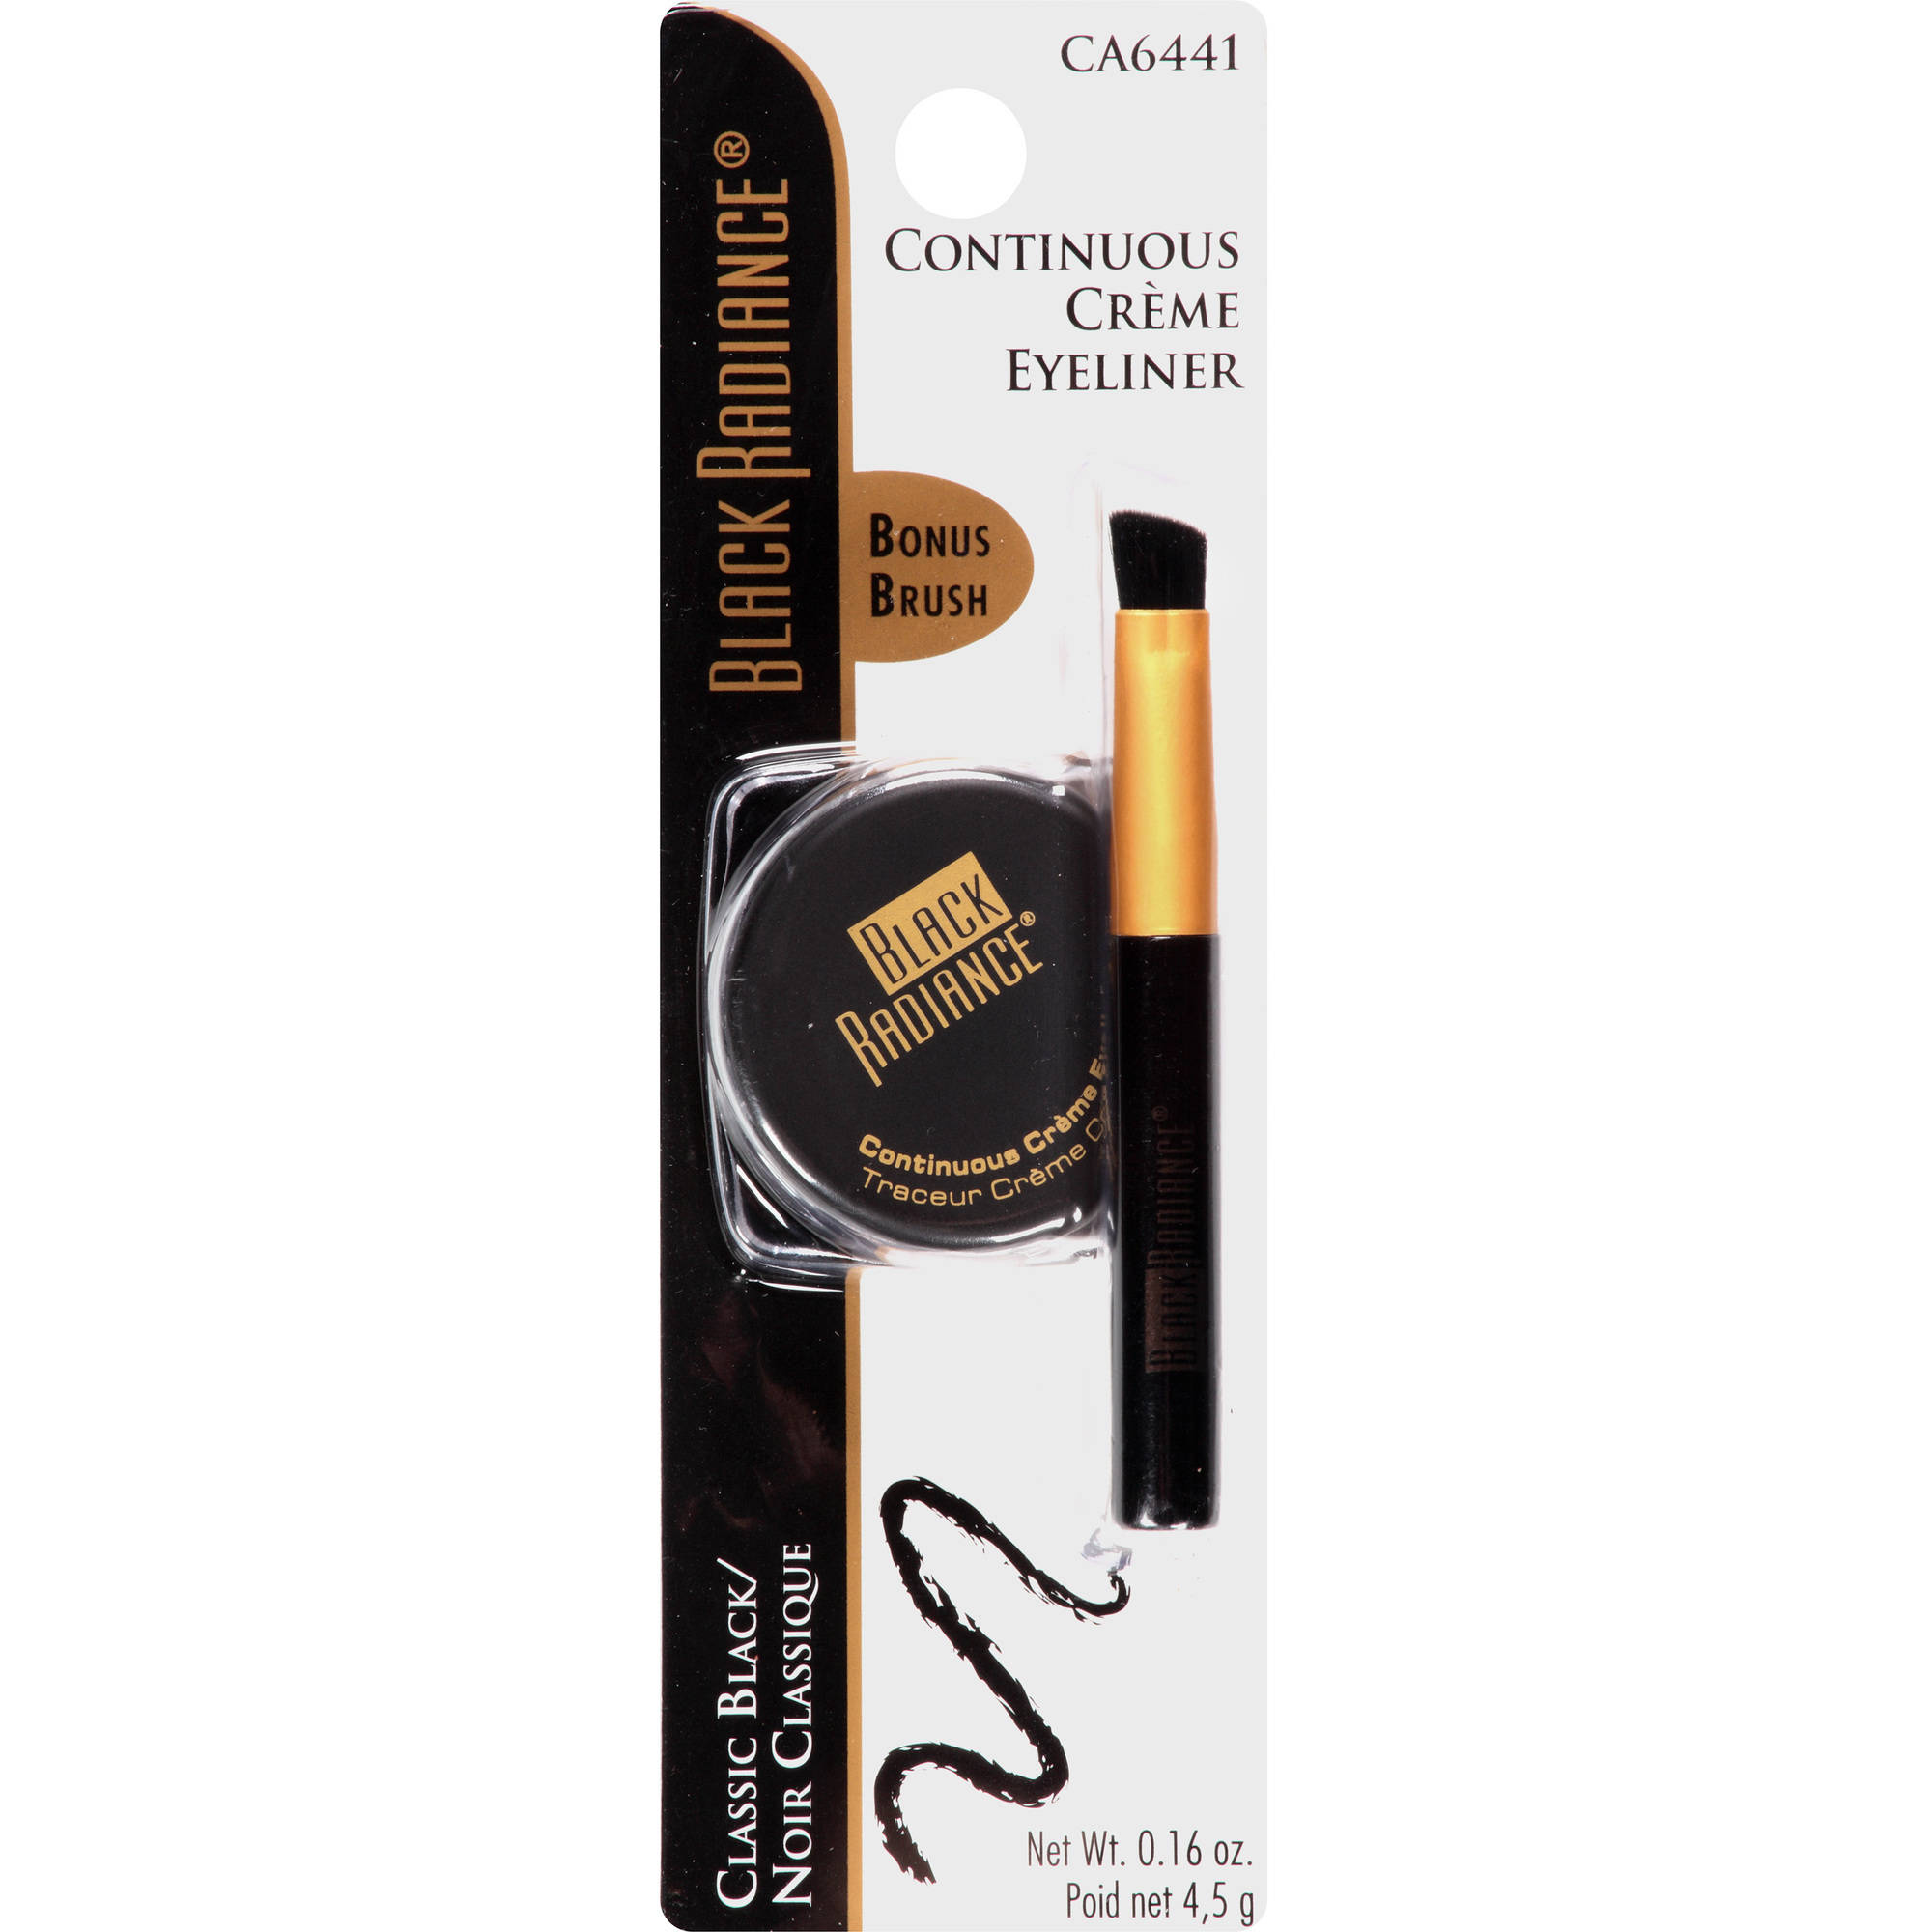 Black Radiance Continuous Creme Eyeliner, CA6441 Classic Black, 0.16 oz